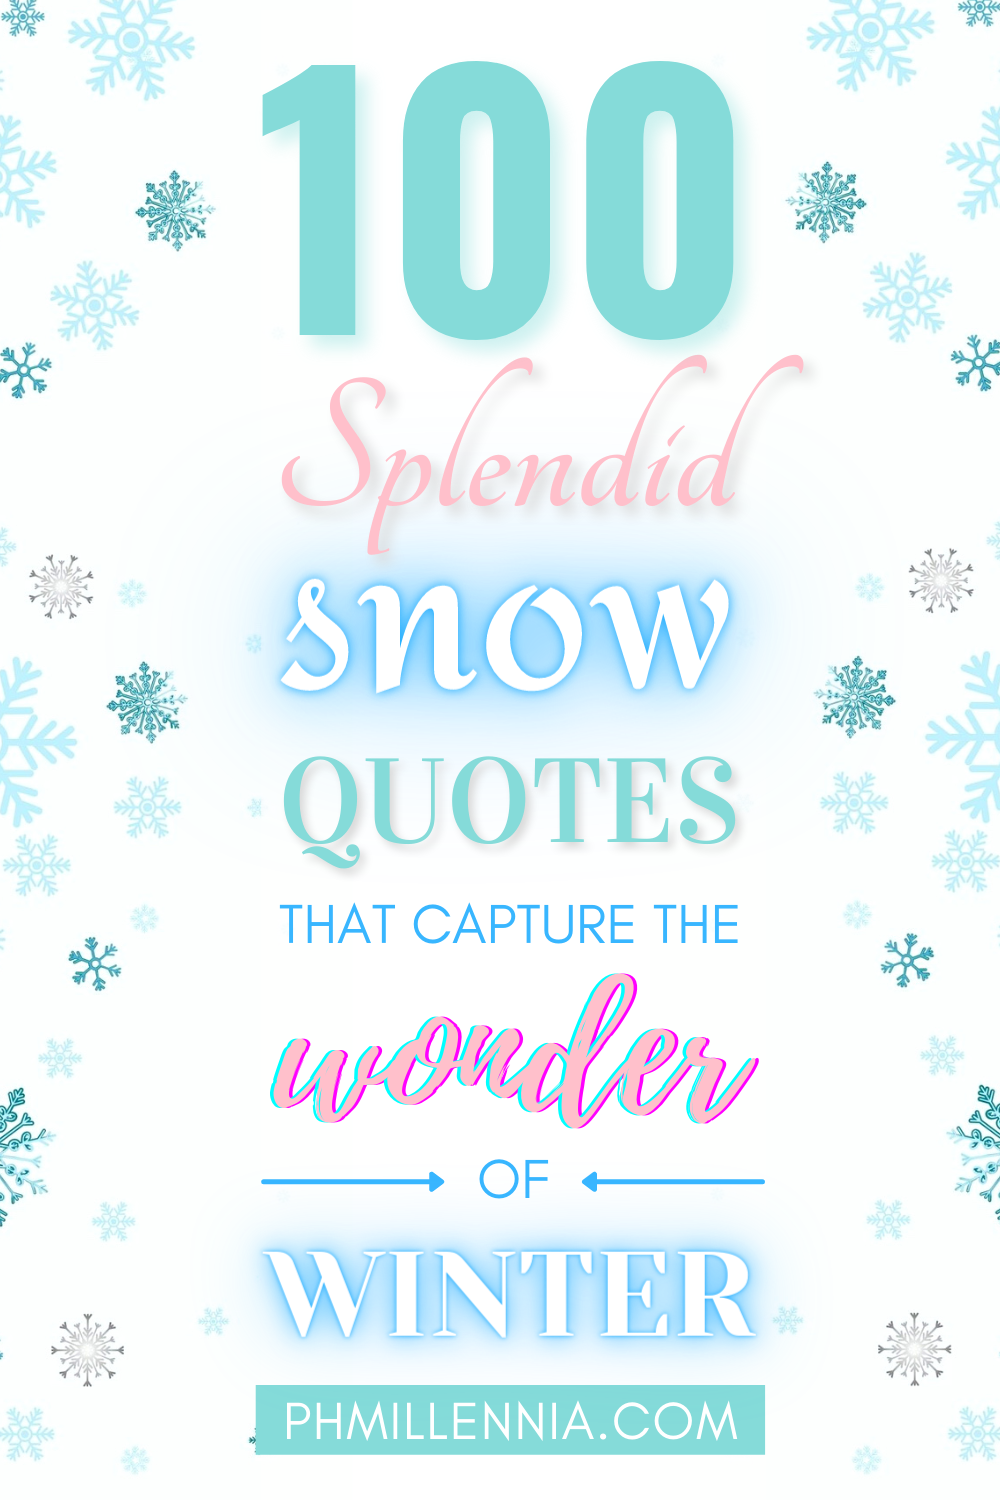 "A Pinterest Pin for the article ""100 Splendid Snow Quotes that Capture the Wonder of Winter"" on phmillennia.com"